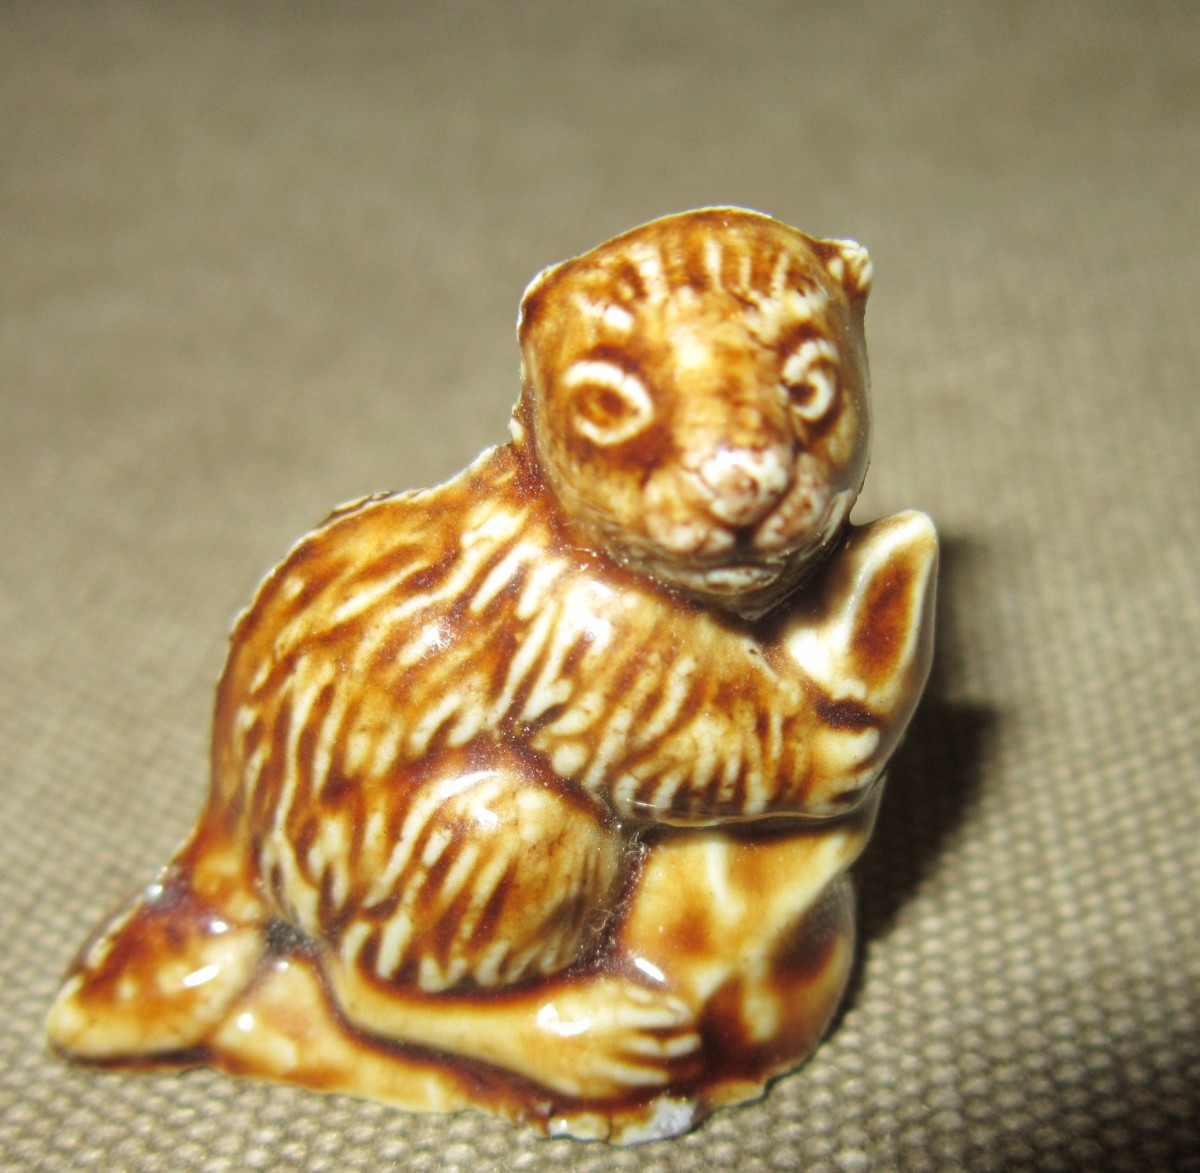 This neutral-toned, animal miniature is a classic piece from Wade Whimsies (as they used to be known).